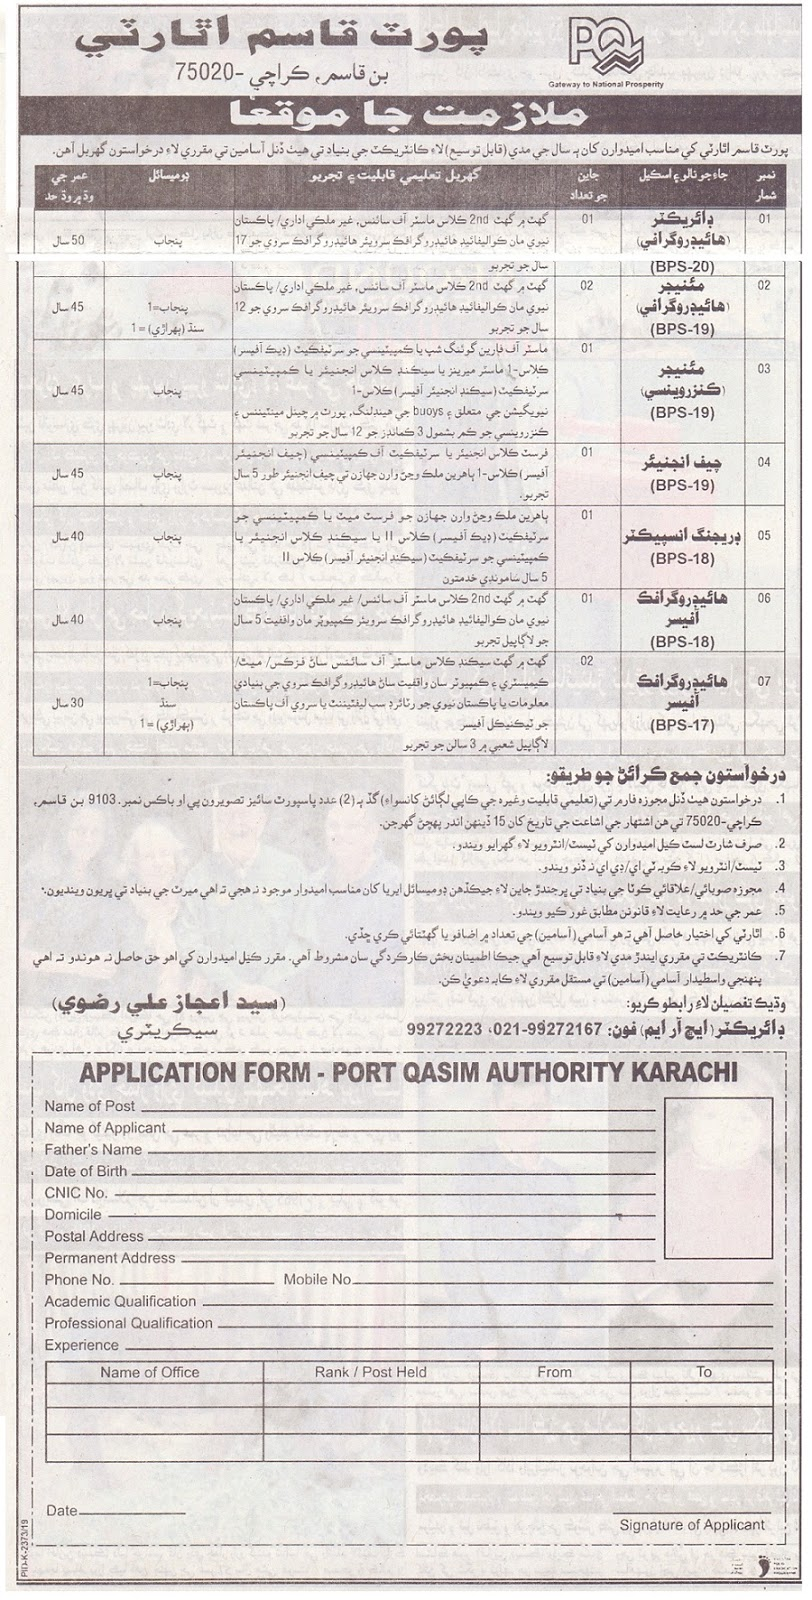 Port Qasim Authority PQA Karachi, P.O Box 9103 Jobs 2019